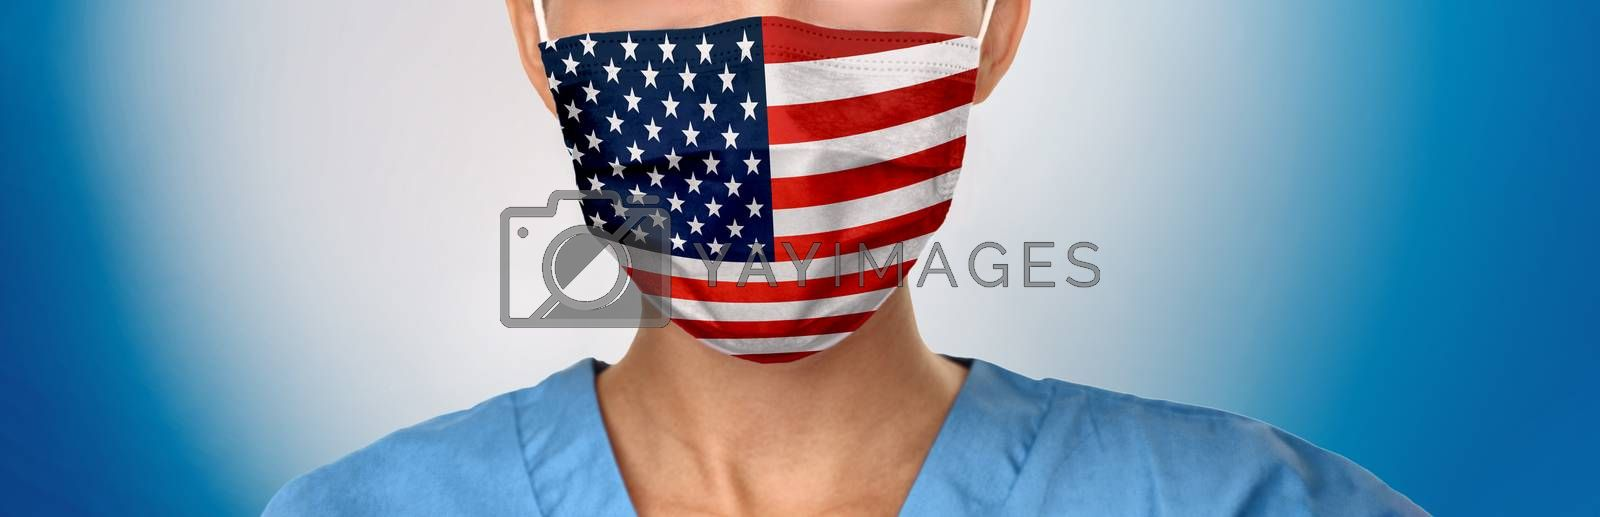 USA Flag pattern on medical face mask banner. American doctor wearing Corona virus protective covering as covid prevention in the United States of America. Panoramic concept for pandemic.